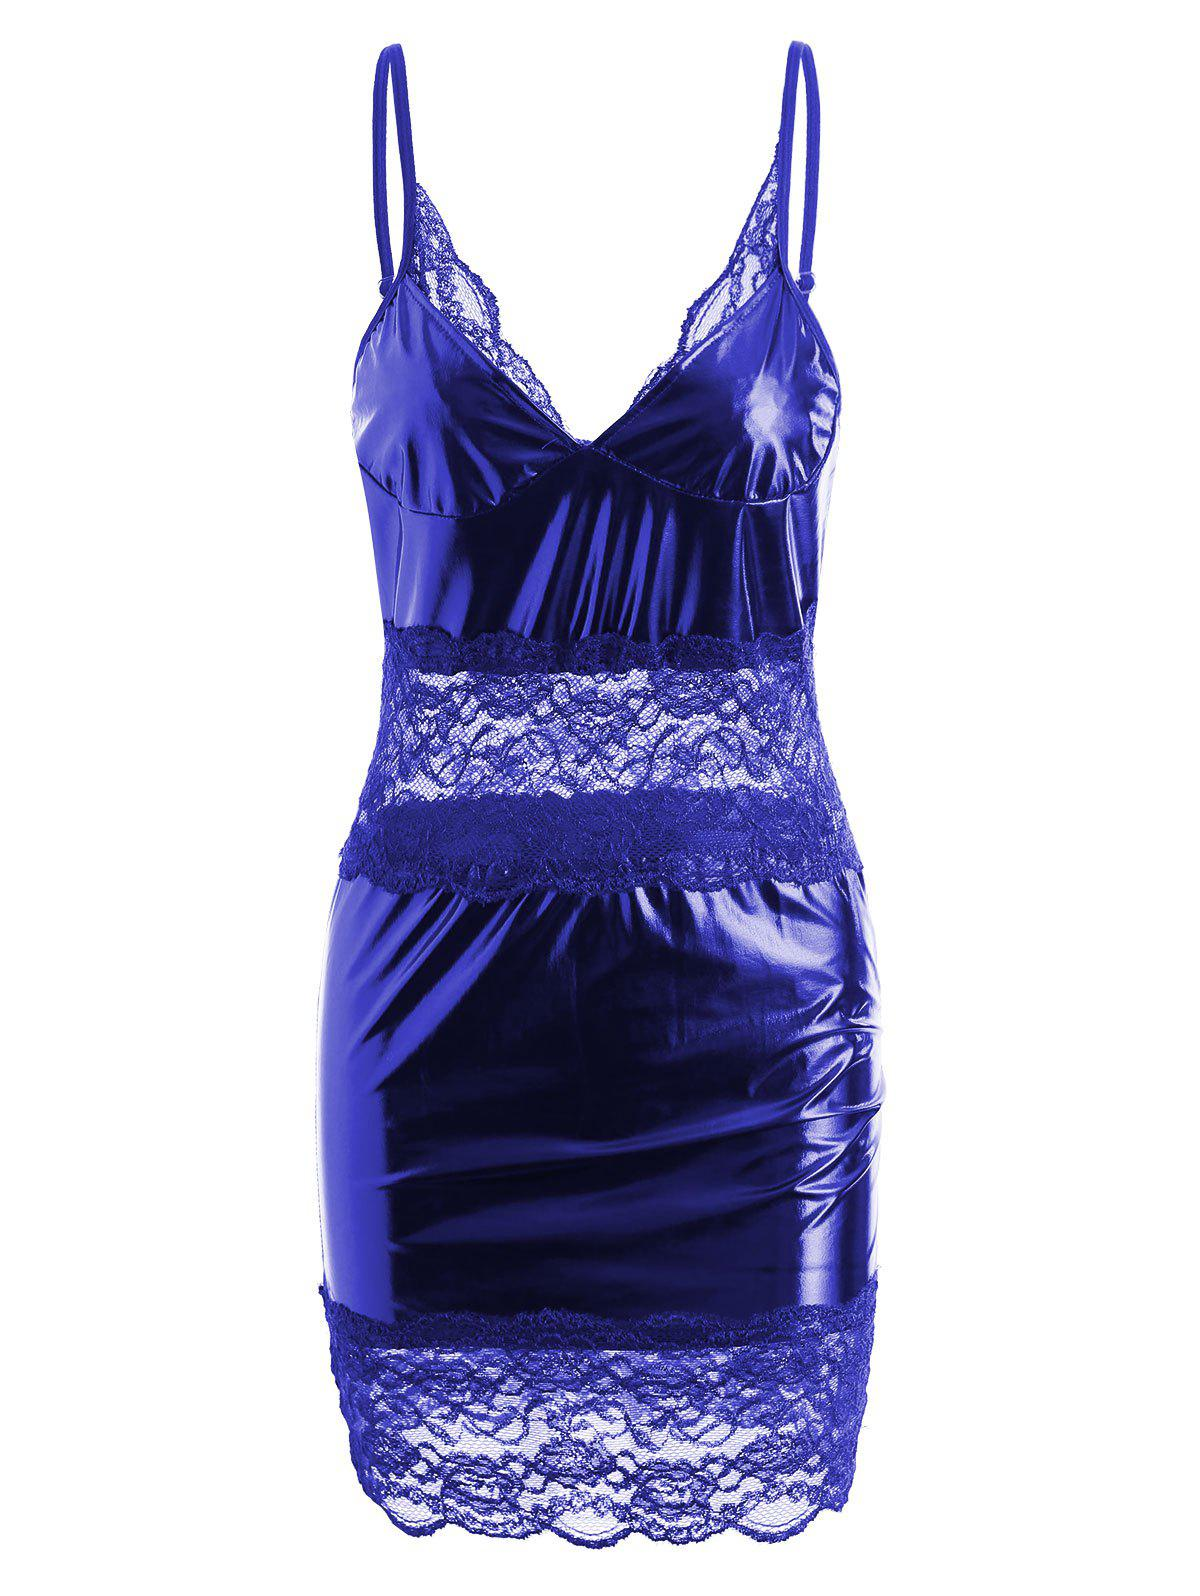 Lace Insert Sheer Slip Club Dress - Bleu L